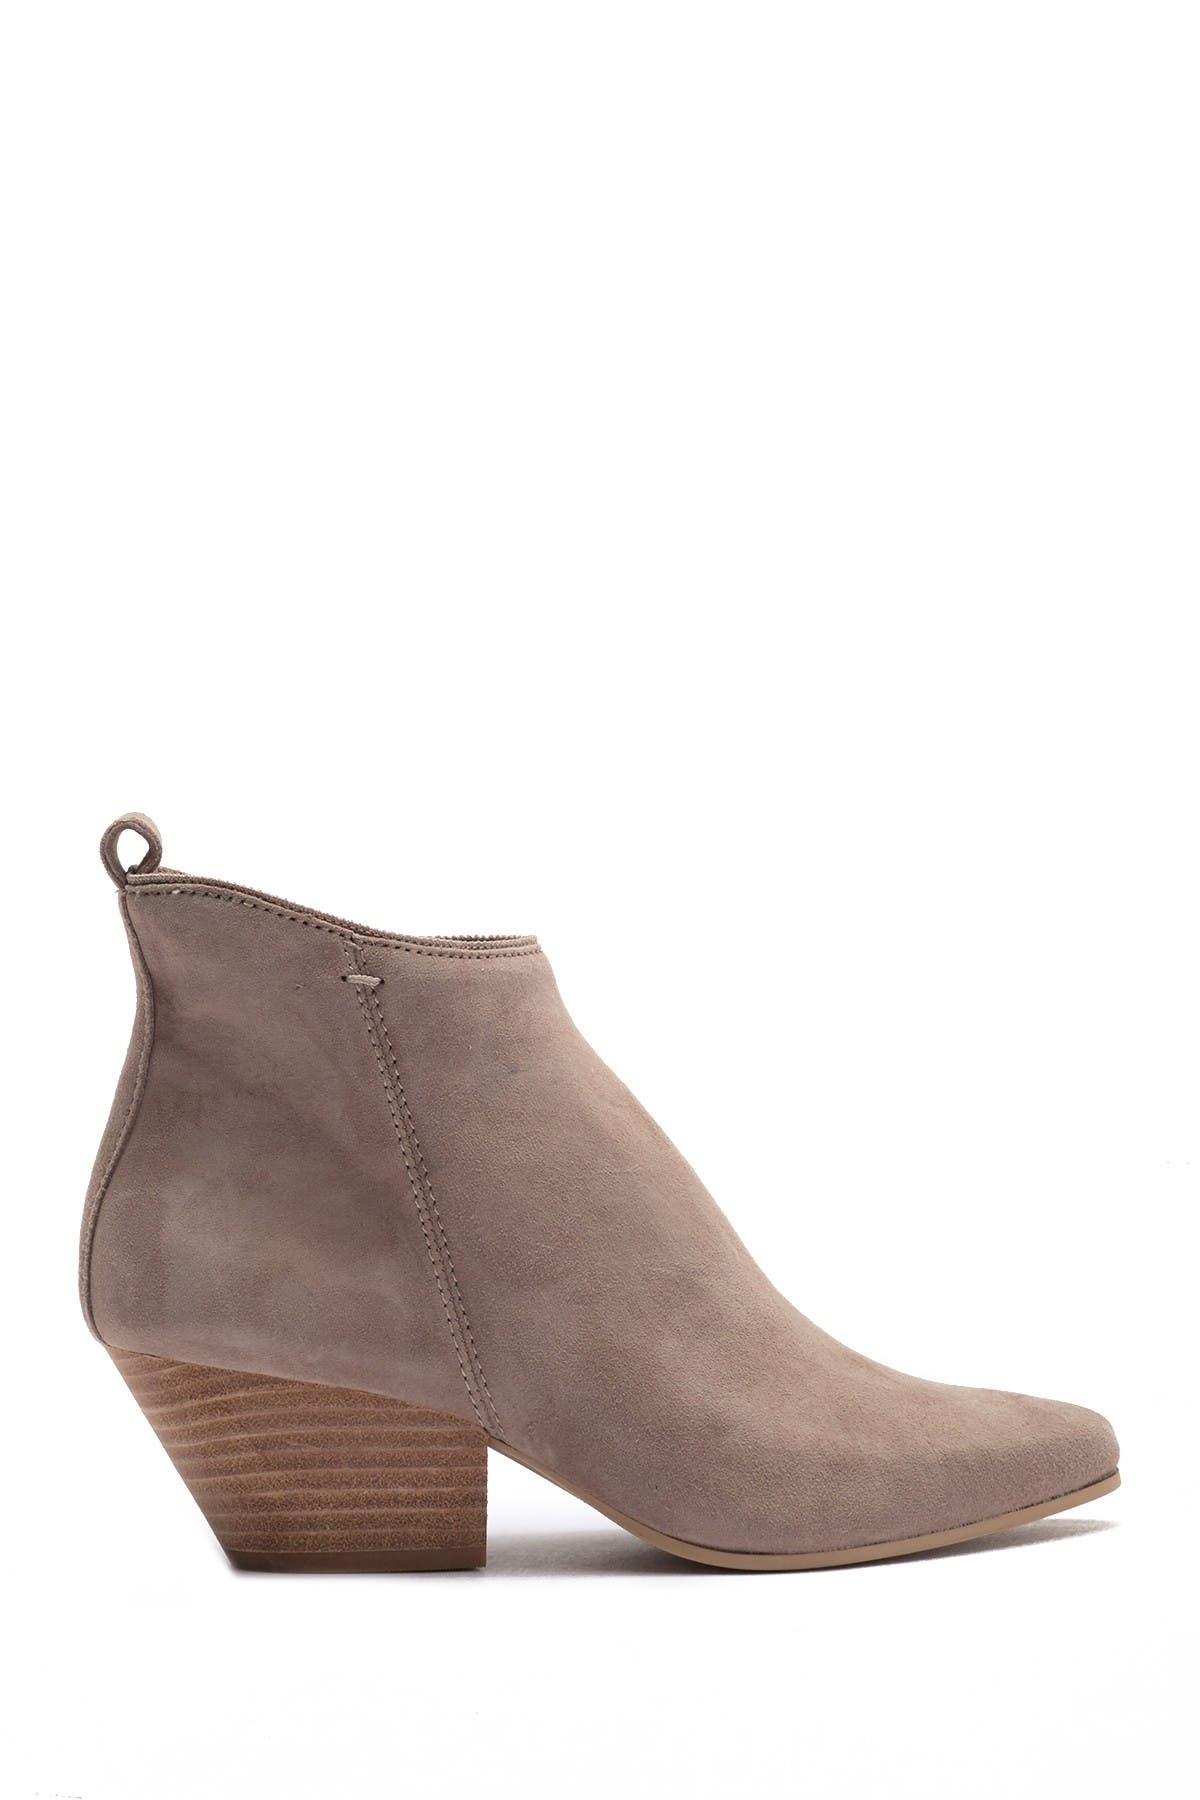 Image of Dolce Vita Pearse Bootie